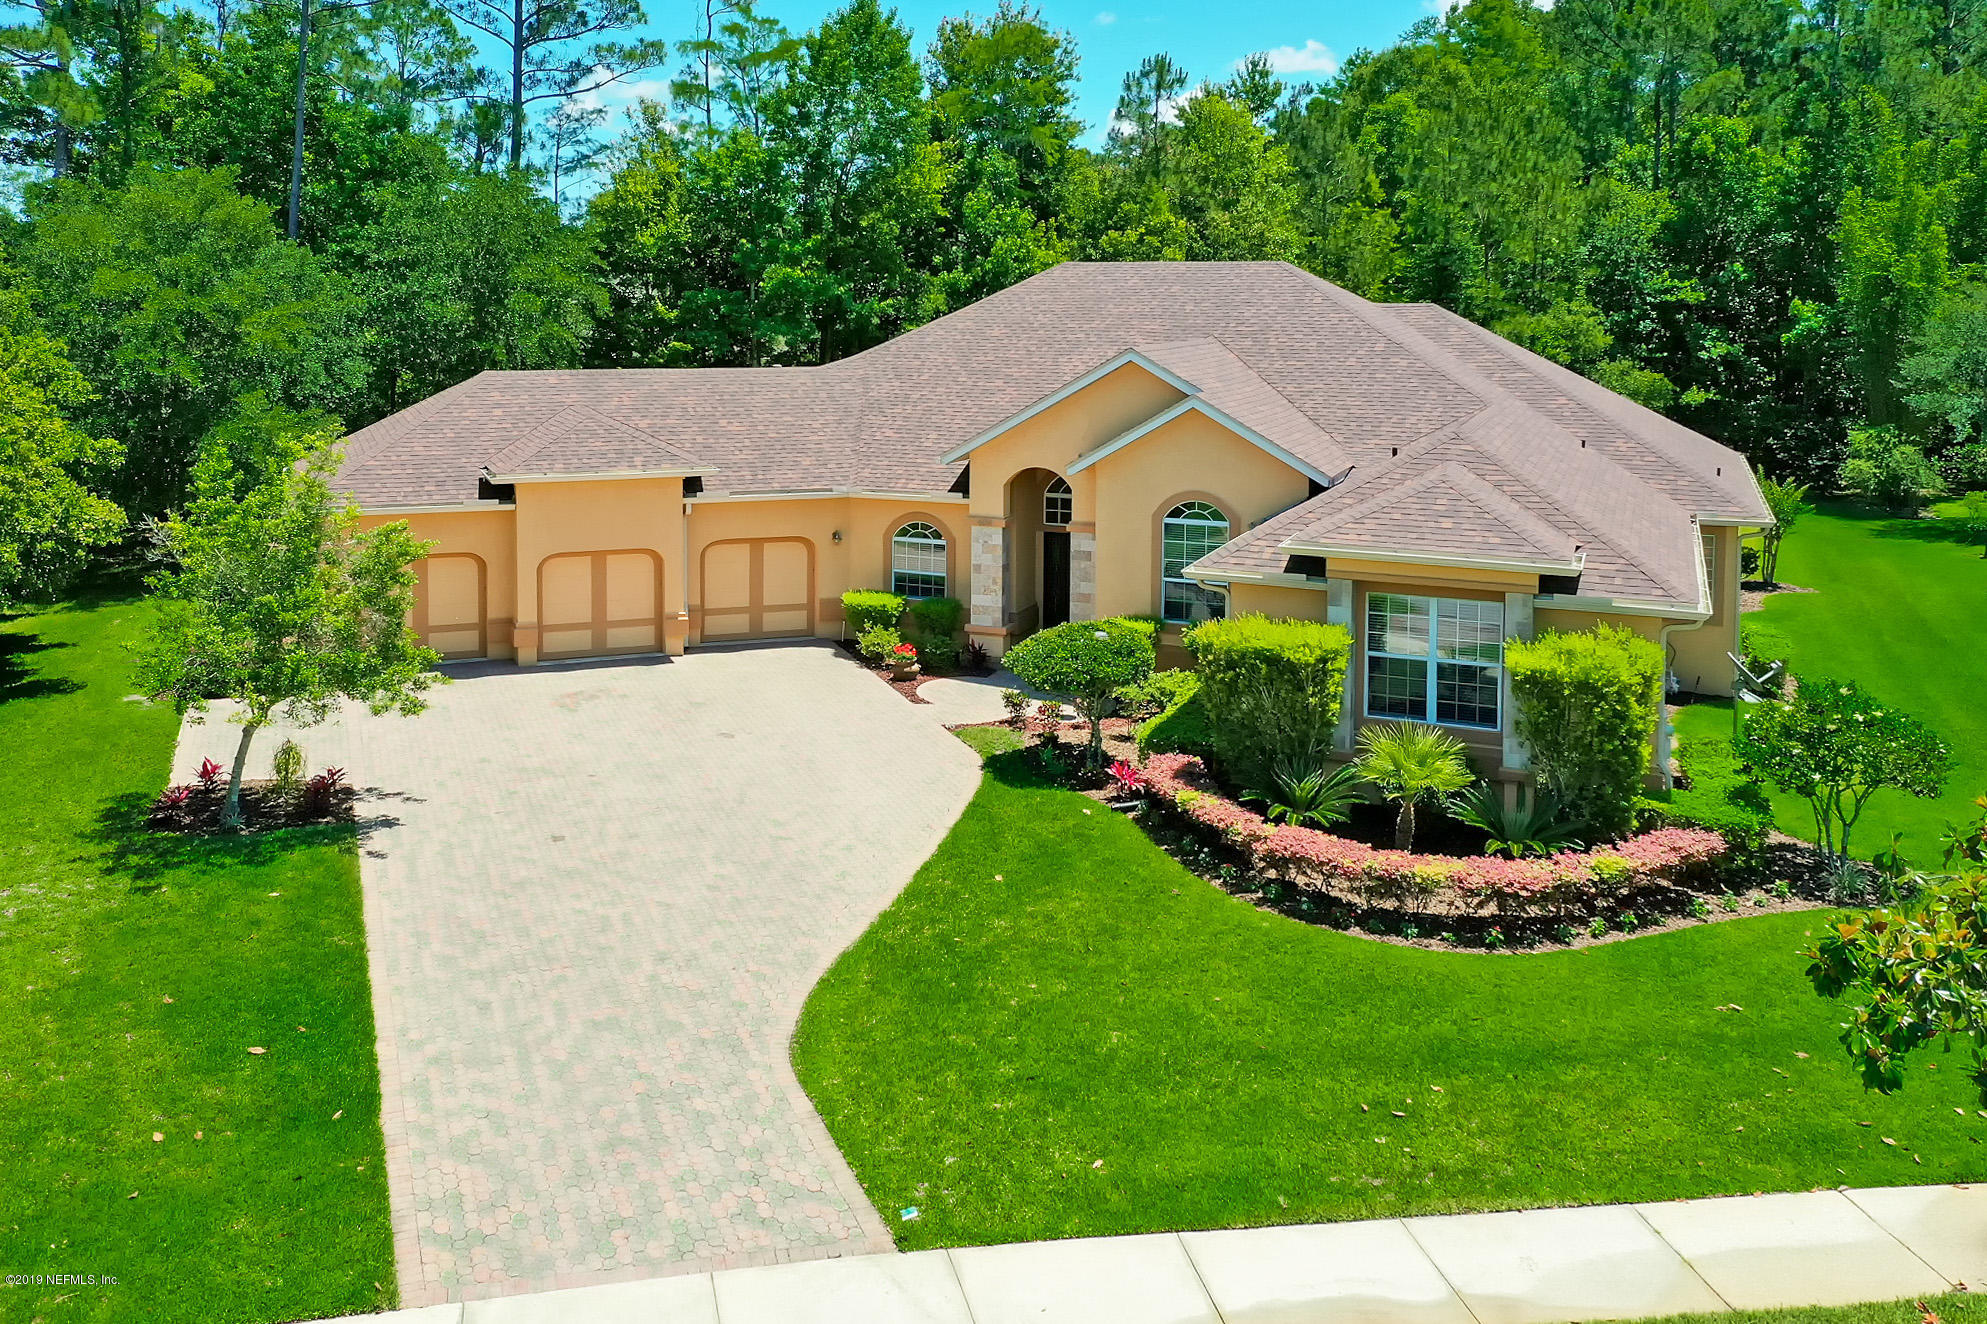 404 REDBAY, ST AUGUSTINE, FLORIDA 32092, 4 Bedrooms Bedrooms, ,4 BathroomsBathrooms,Residential - single family,For sale,REDBAY,996357